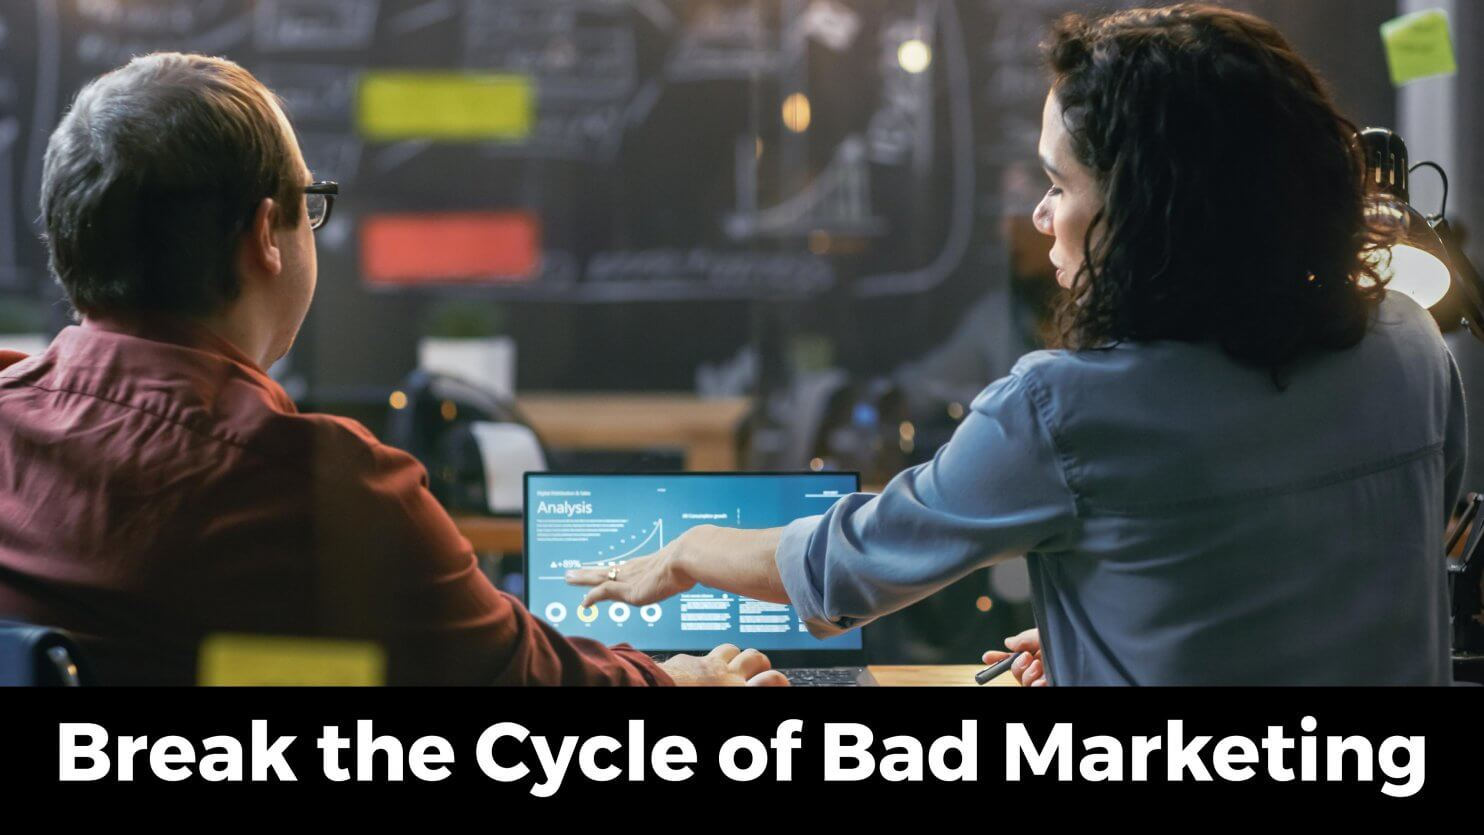 Break the Cycle of Bad Marketing